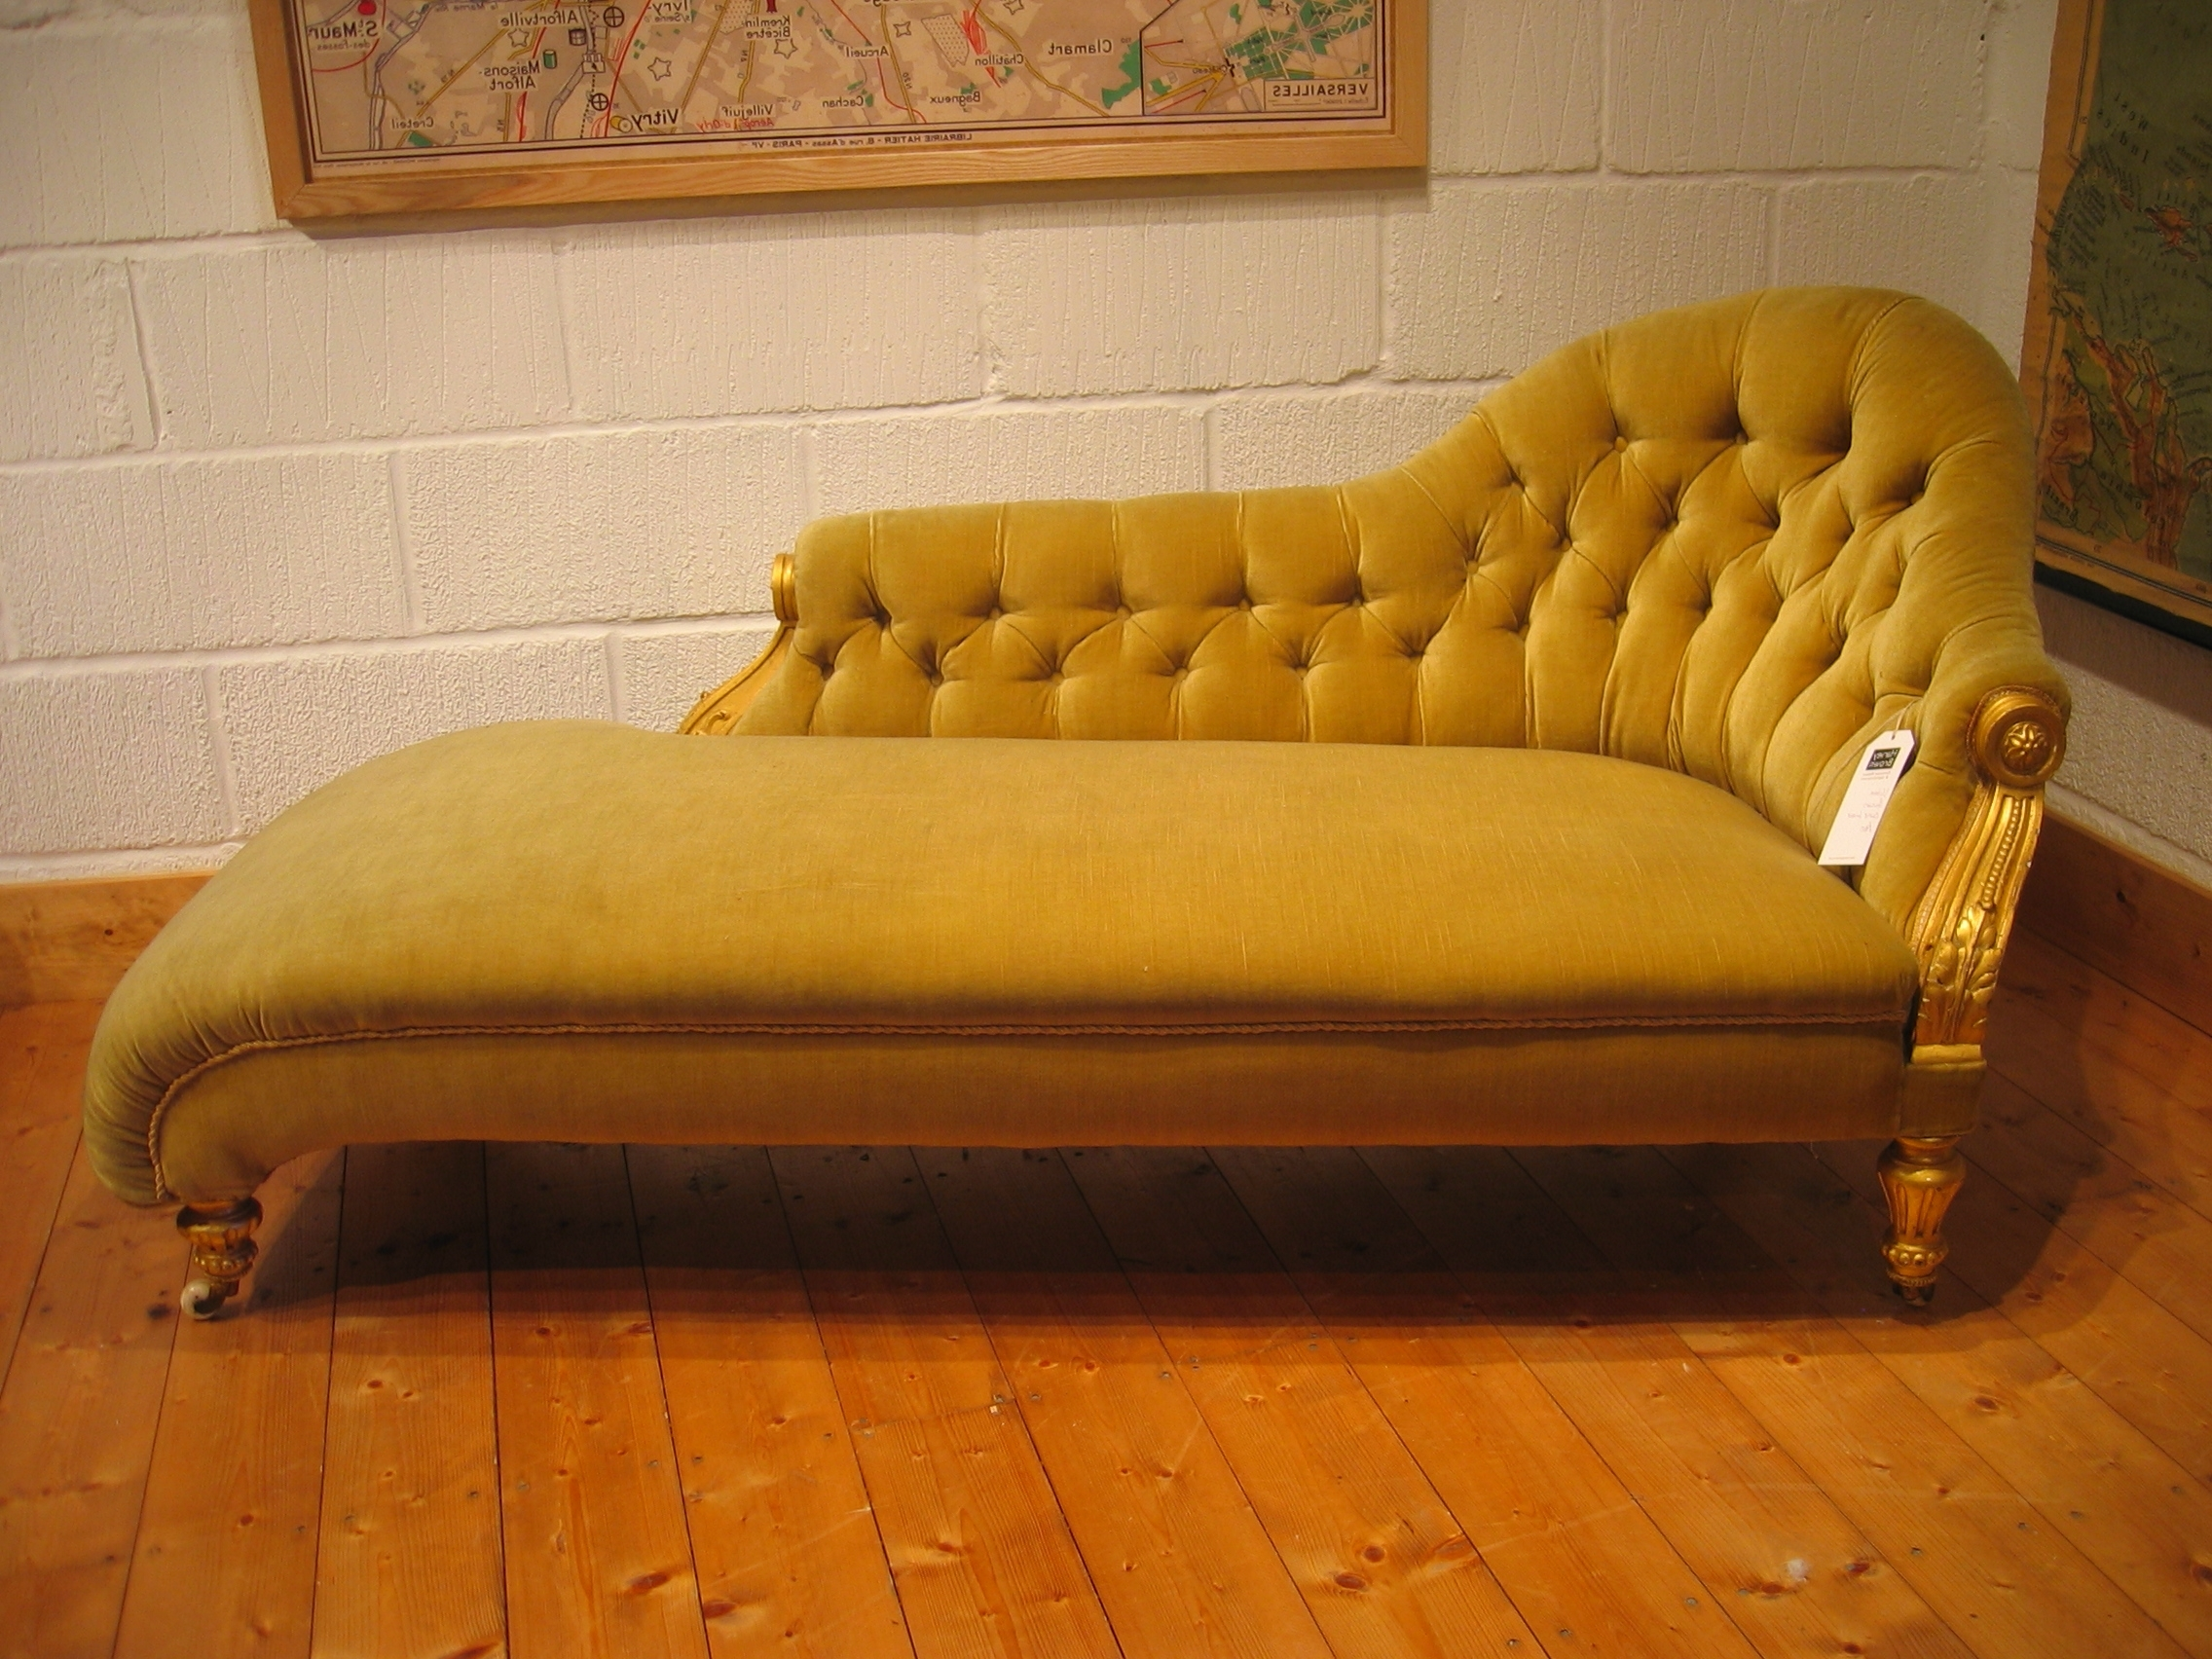 Well Known Yellow Color Antique Victorian Chaise Lounge Sofa Bed With Wooden With Regard To Victorian Chaises (View 9 of 15)